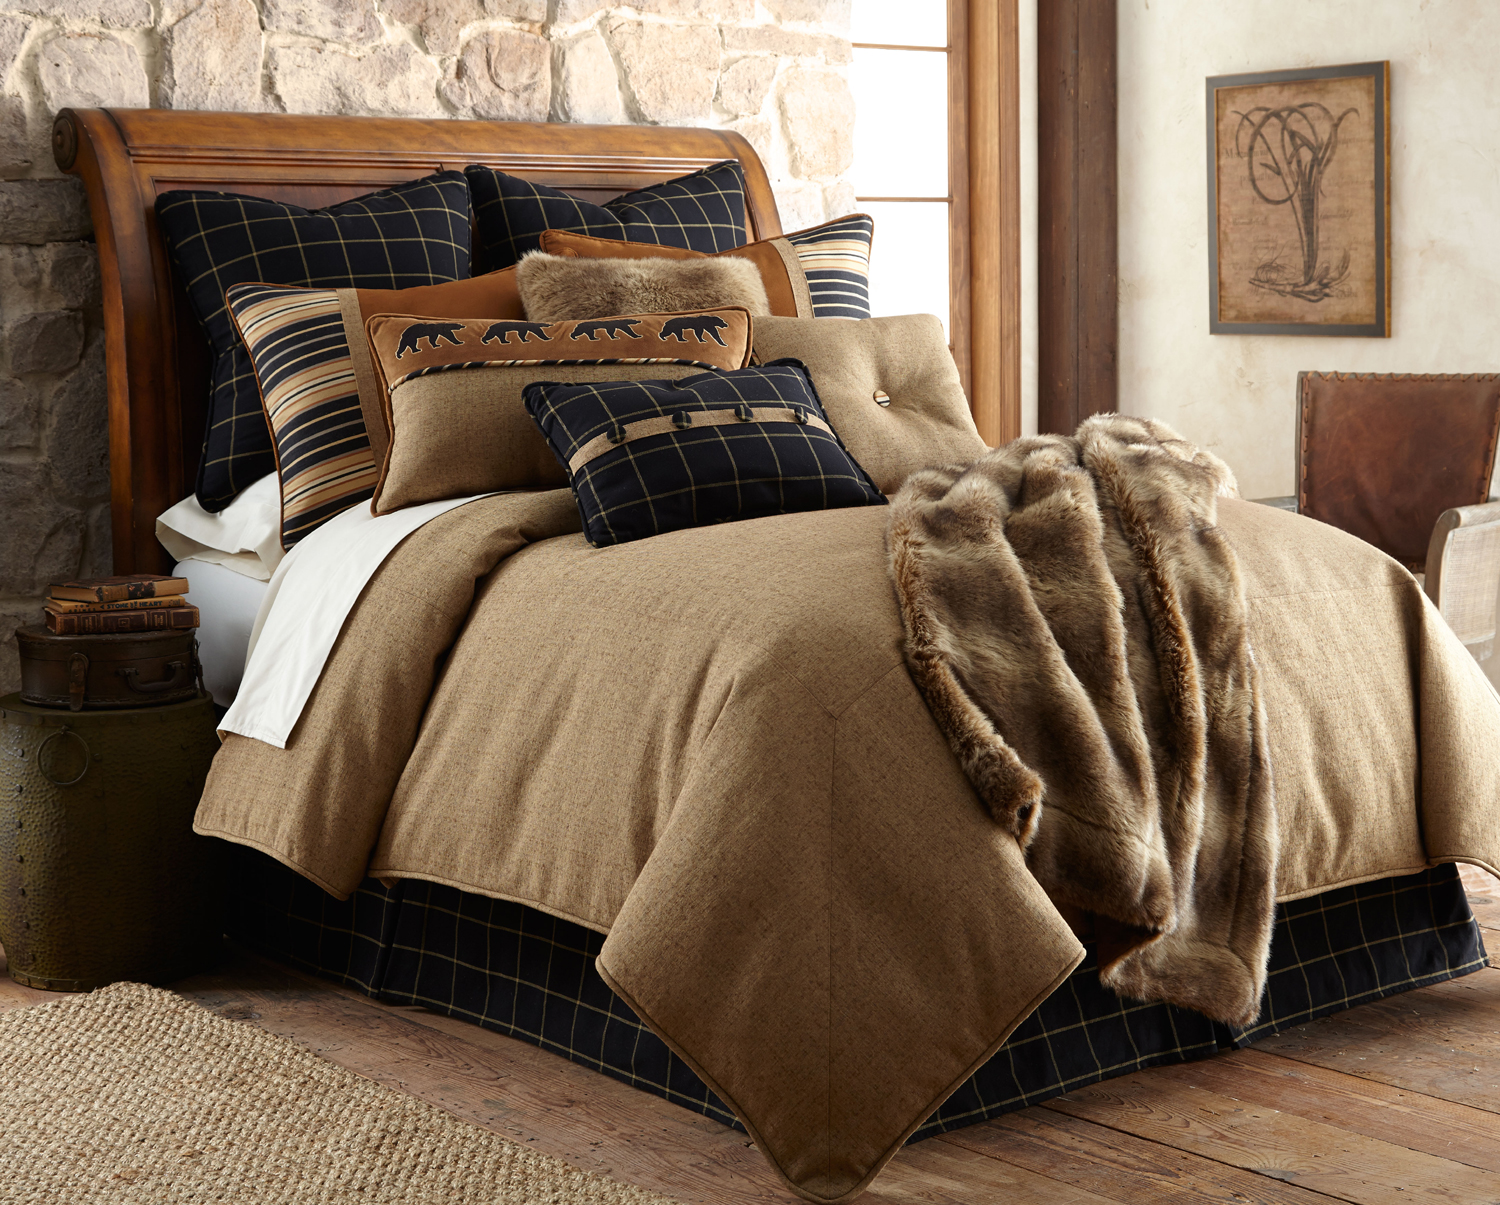 Ashbury By Hiend Accents Homemax By Hiend Accents